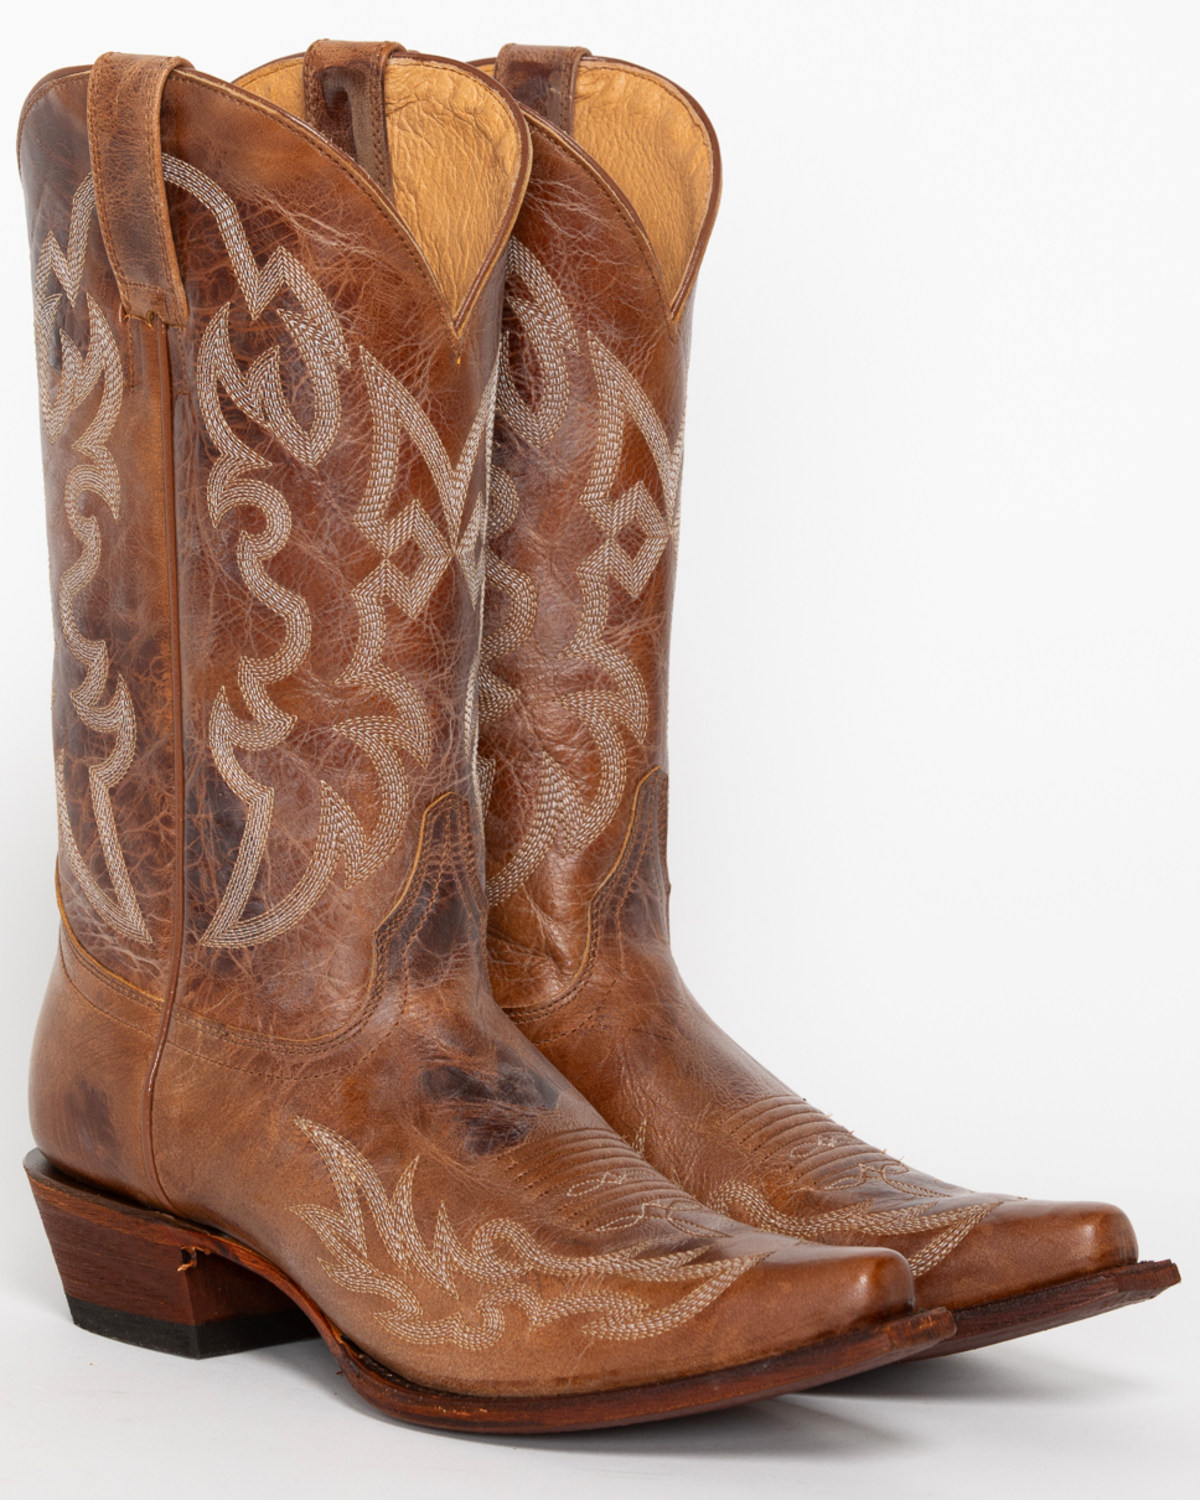 About Elliott's Boots. Elliott's Boots is located in West Morris Boulevard, Morristown, TN , United States. The phone number () belongs to Elliott's Boots and you can get in touch Elliott's Boots via phone number Elliott's Boots.